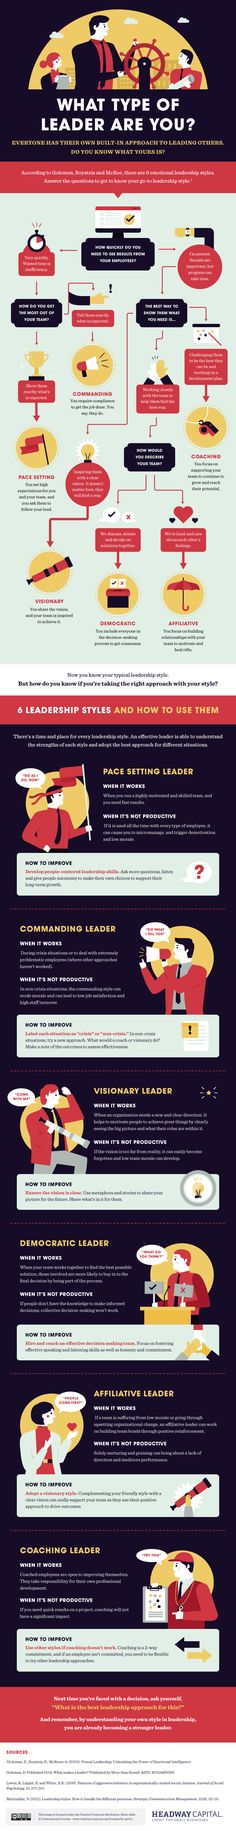 If you ever have to step up and manage people, it can be pretty difficult to figure out the best way to do it in a way that both works with your personality and gets the job done. This flowchart can help you figure out—in broad categories, of course—what type of leader you might be.